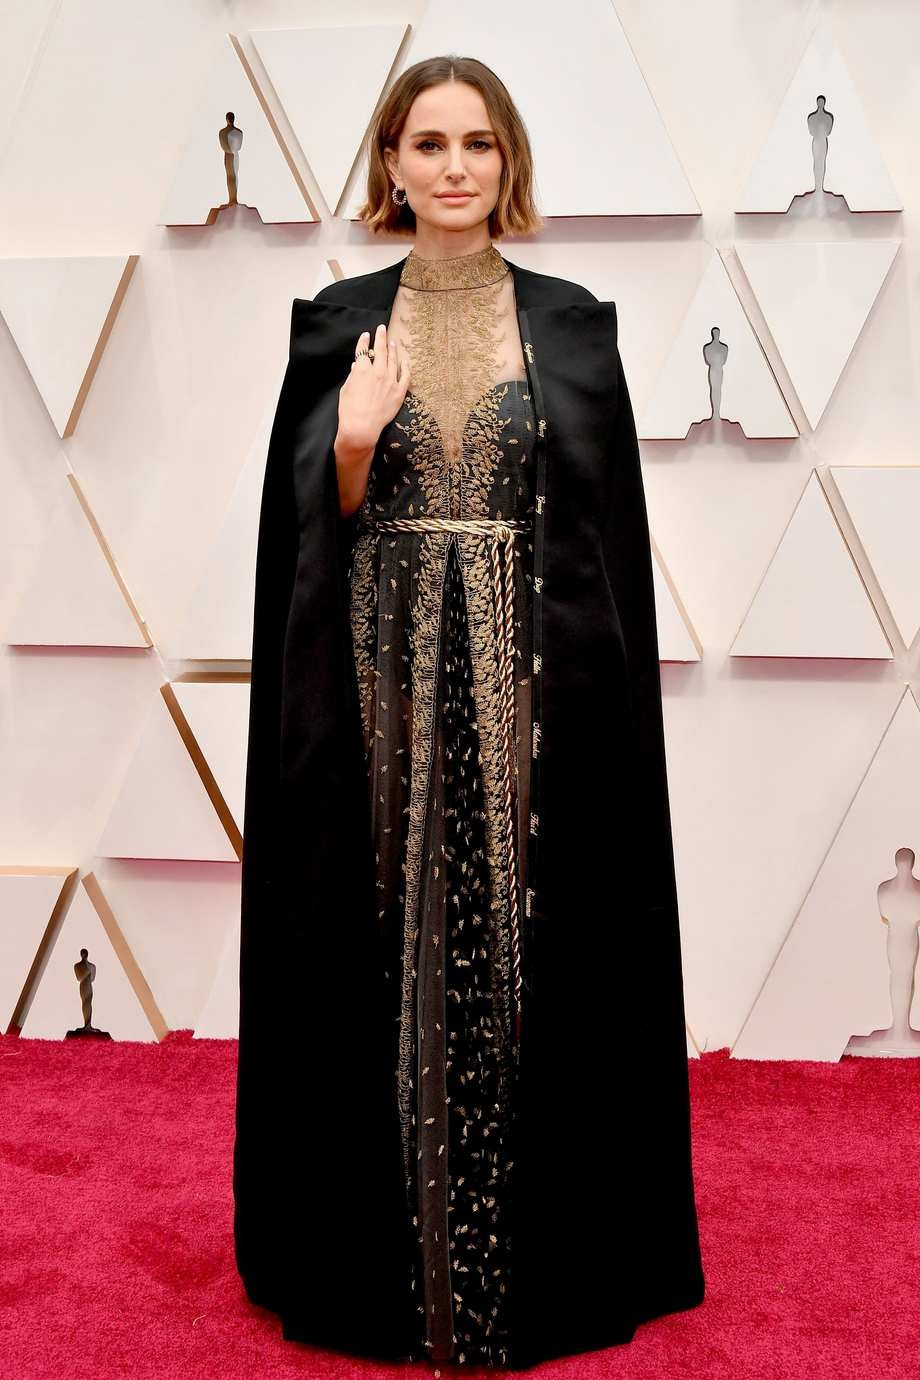 Natalie Portman Best Dressed Oscars 2020 Christian Dior - with the names of female directors embroidered into the cape